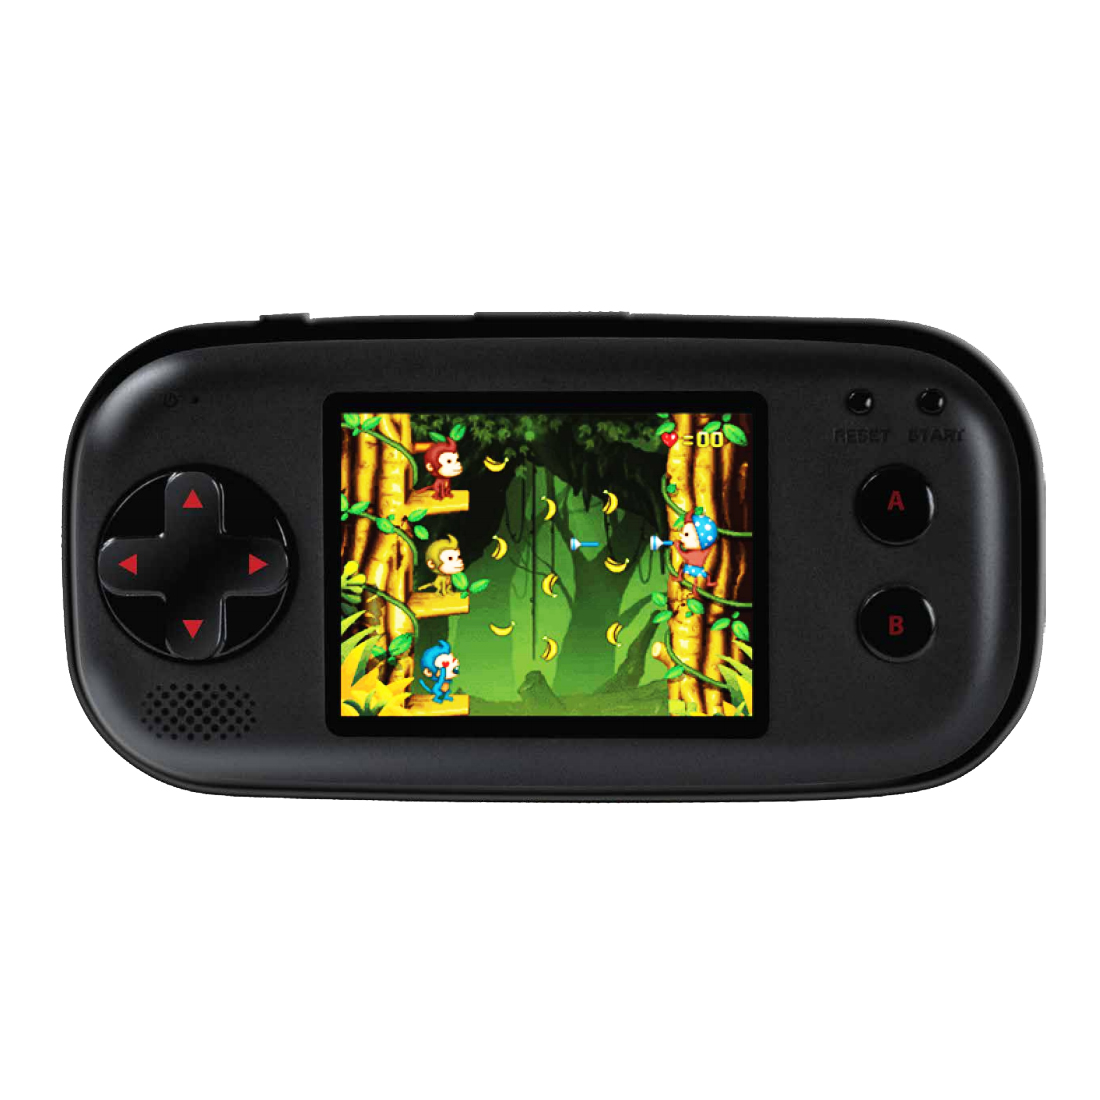 Gamer X Handheld Portable, dreamGEAR My Arcade, Retro Gaming, 845620025800